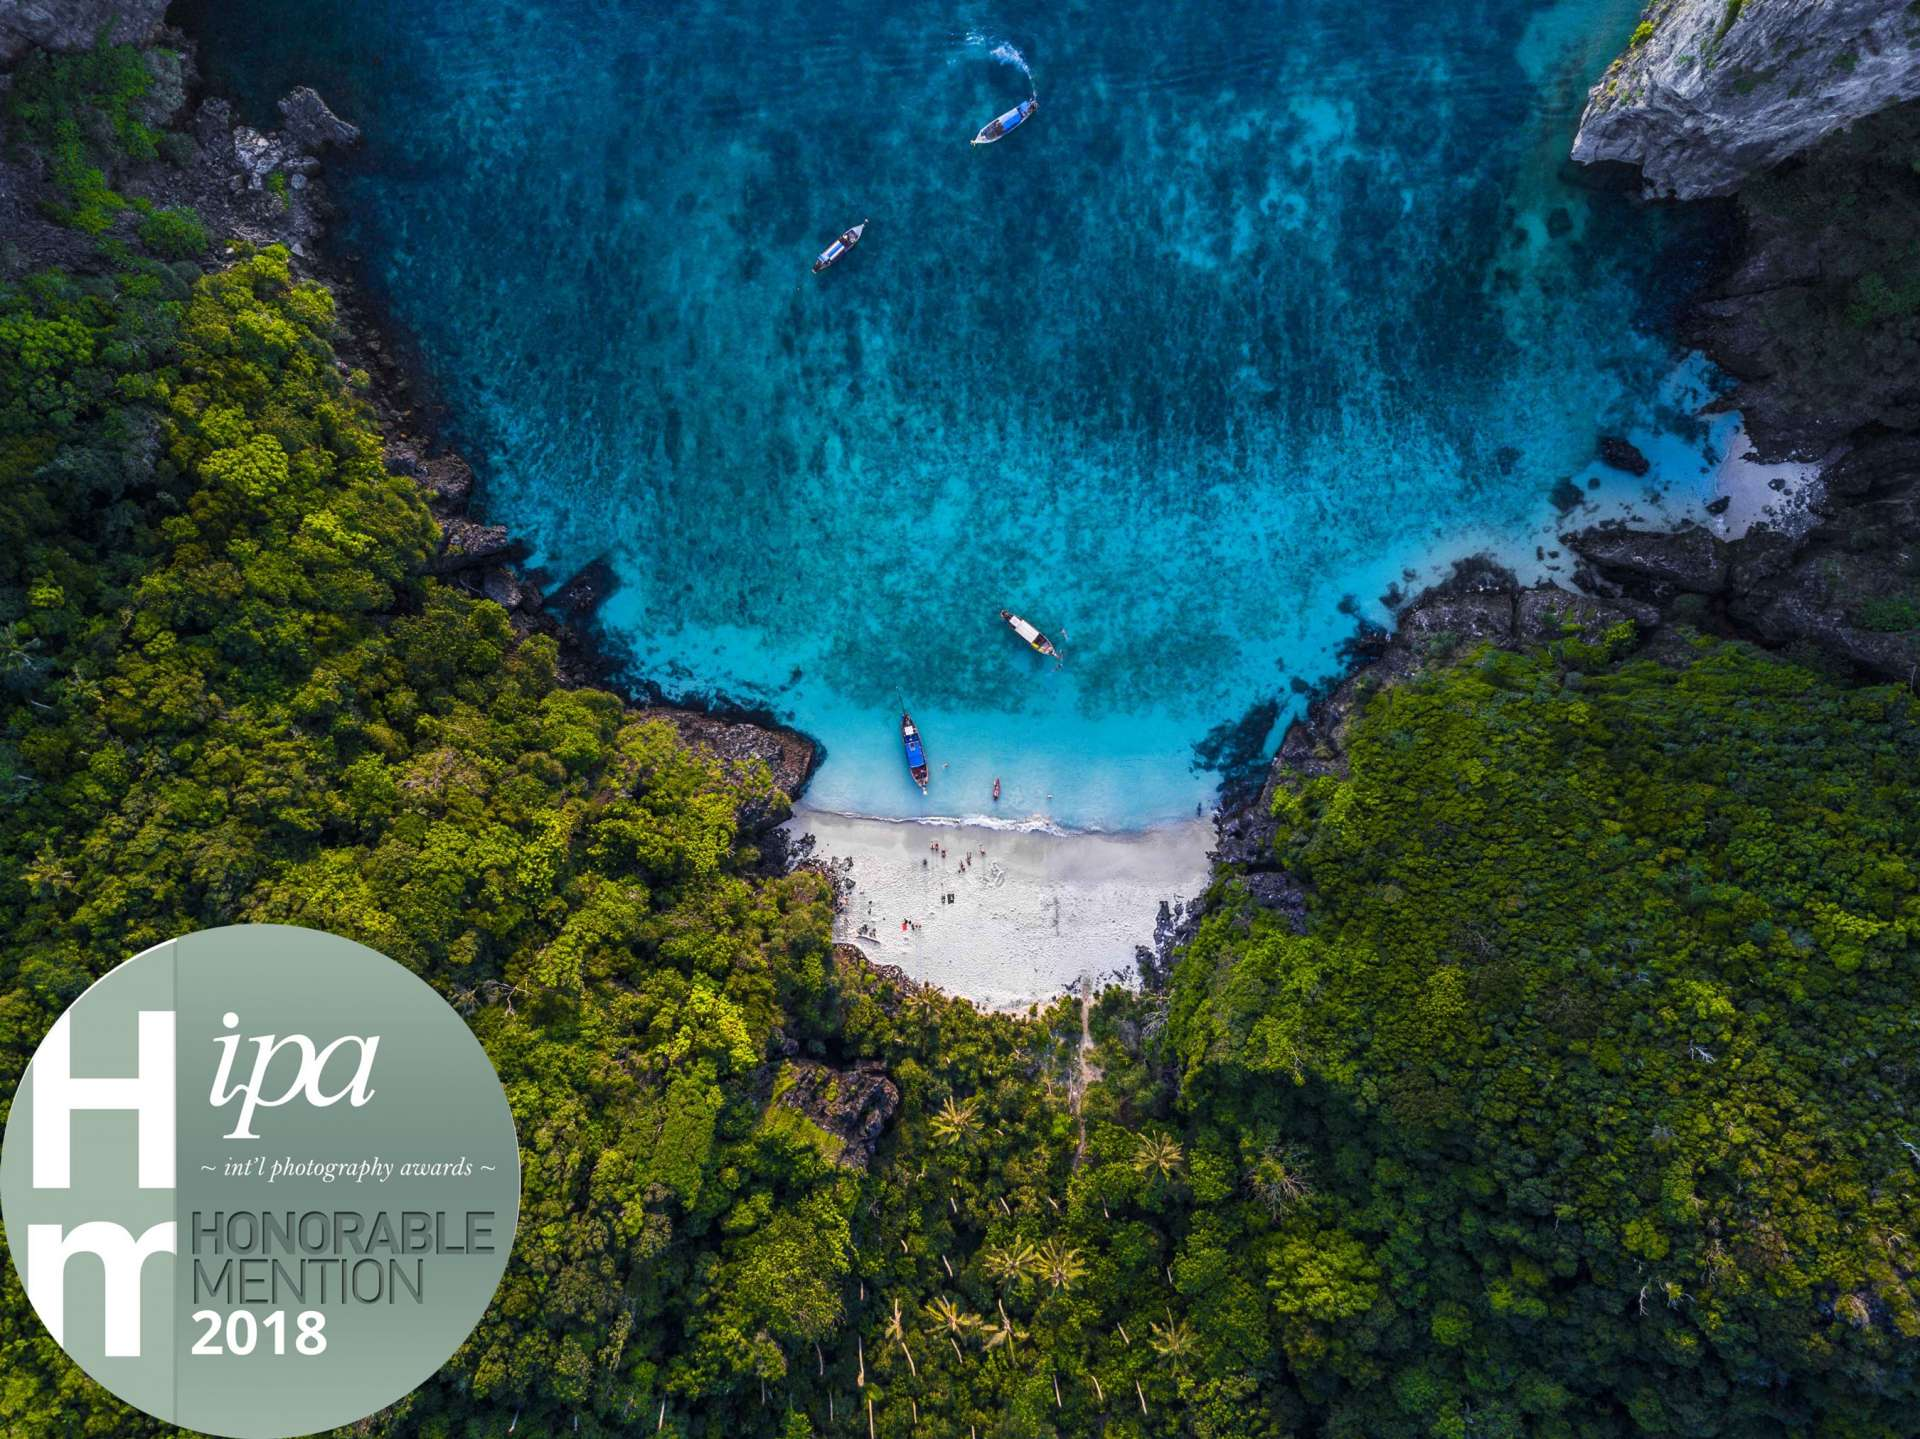 IPA 2018 International Photography Awards 2018 Enrico Pescantini Honorable Mention Jungle Beach